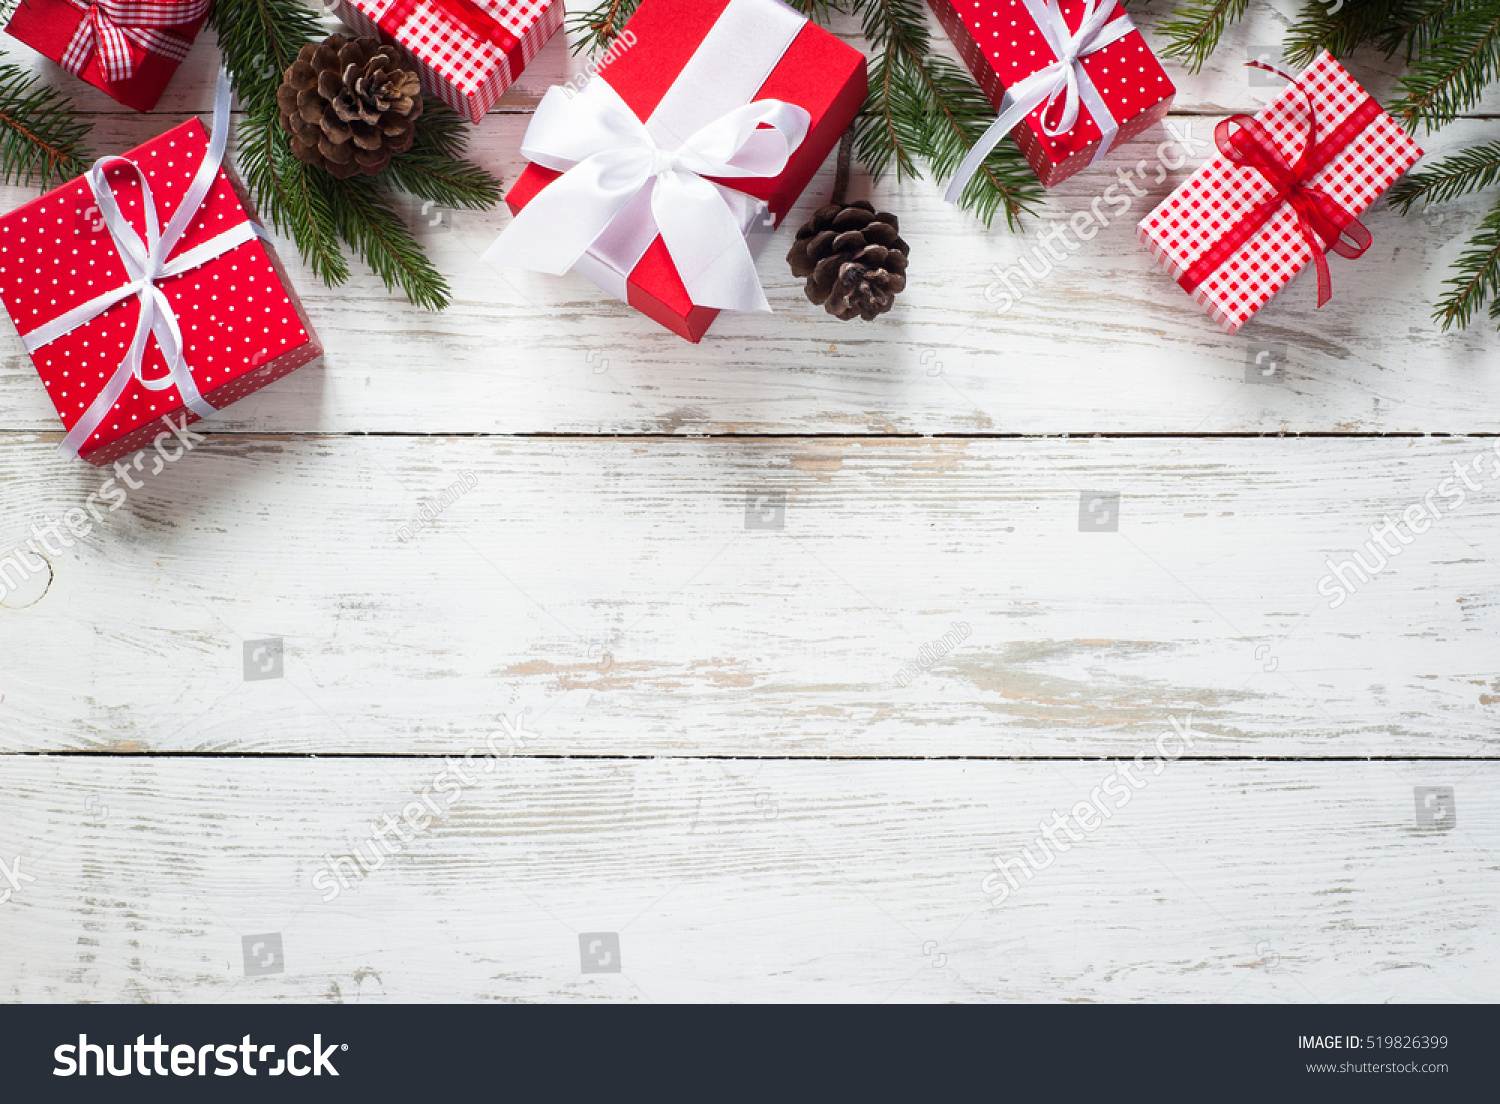 Christmas gift box presents red stock photo